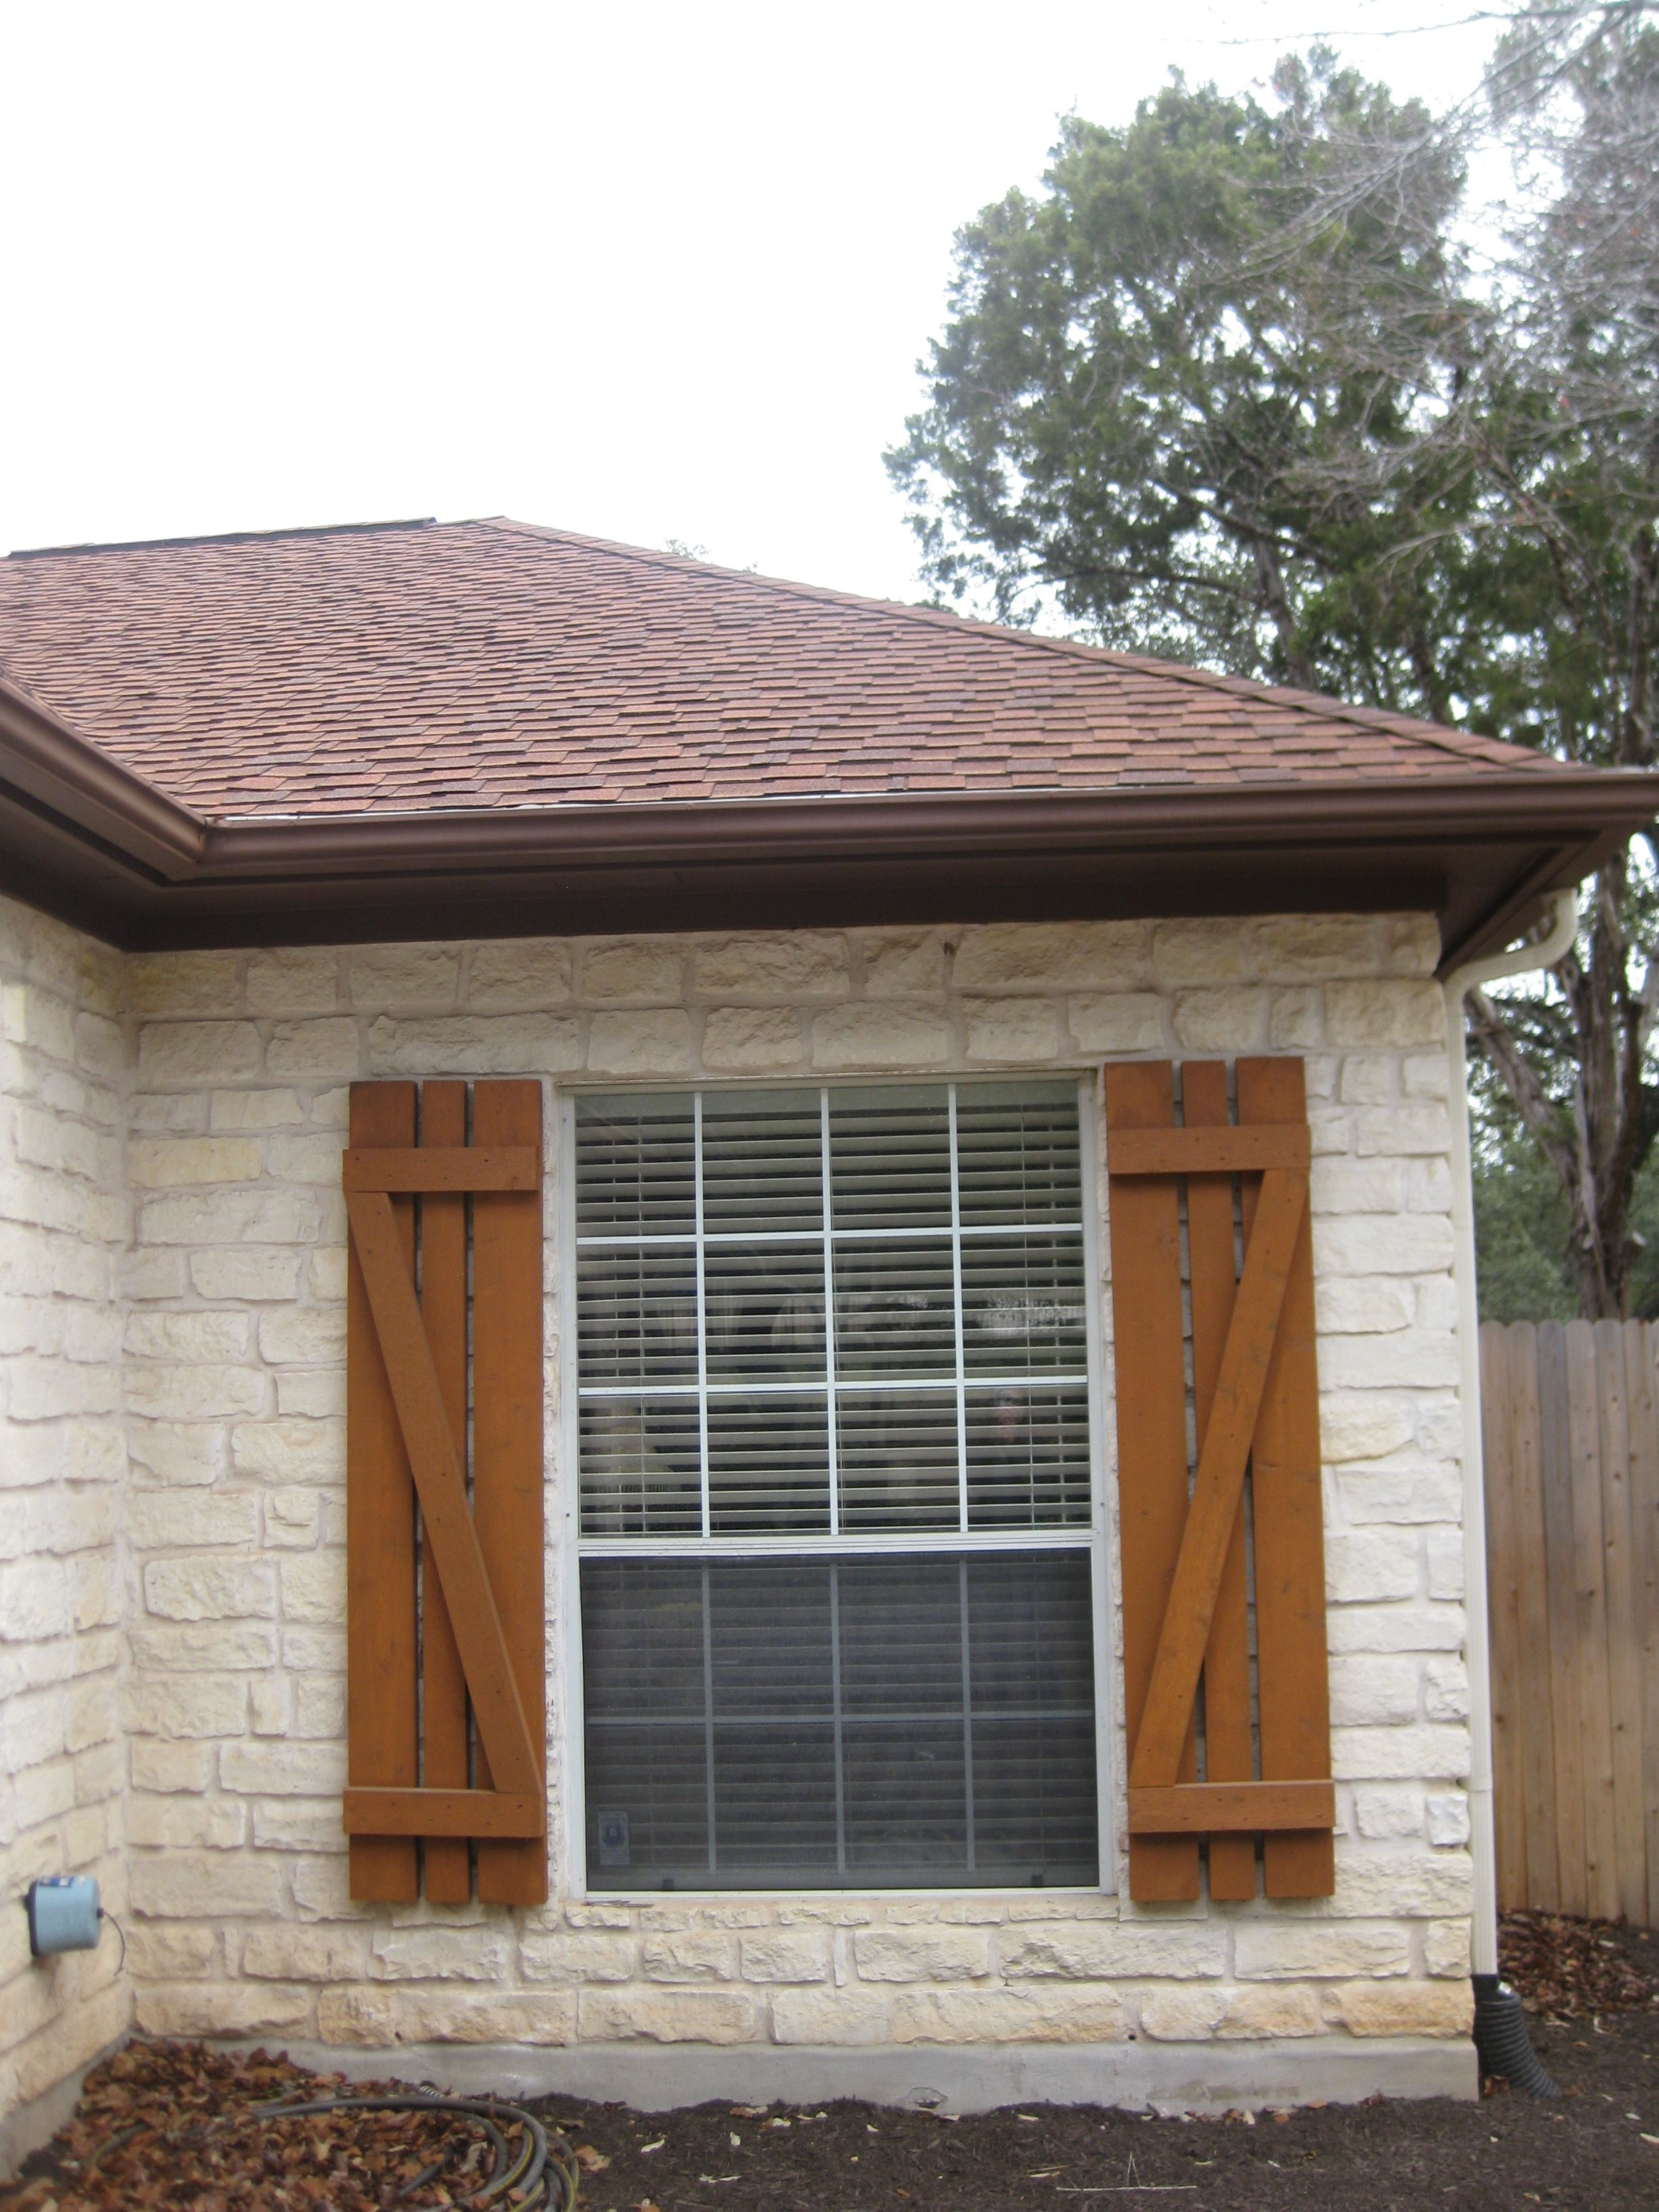 This Old House: Dressing Up the Exterior | Cedar shutters, House and ...